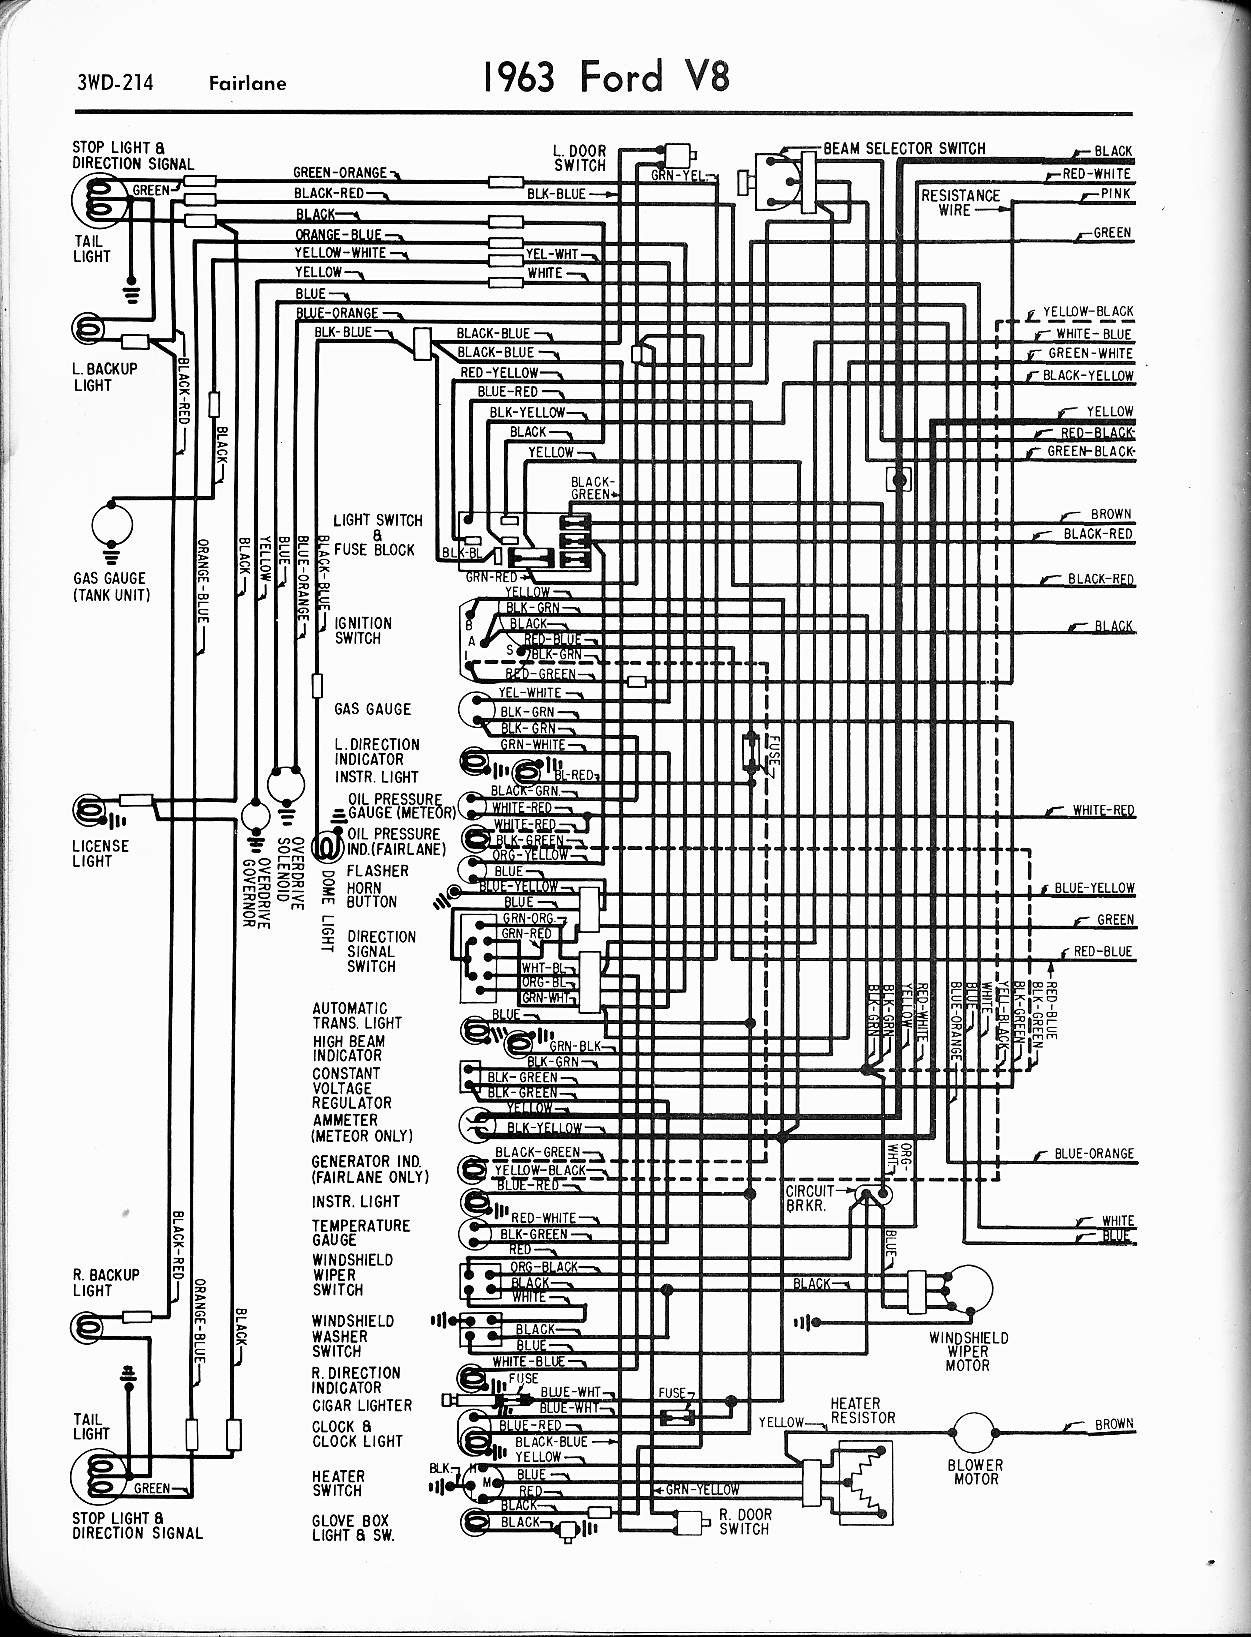 Ford Fairlane Wiring Diagram Starting Know About 2000 Gmc W4500 Heater